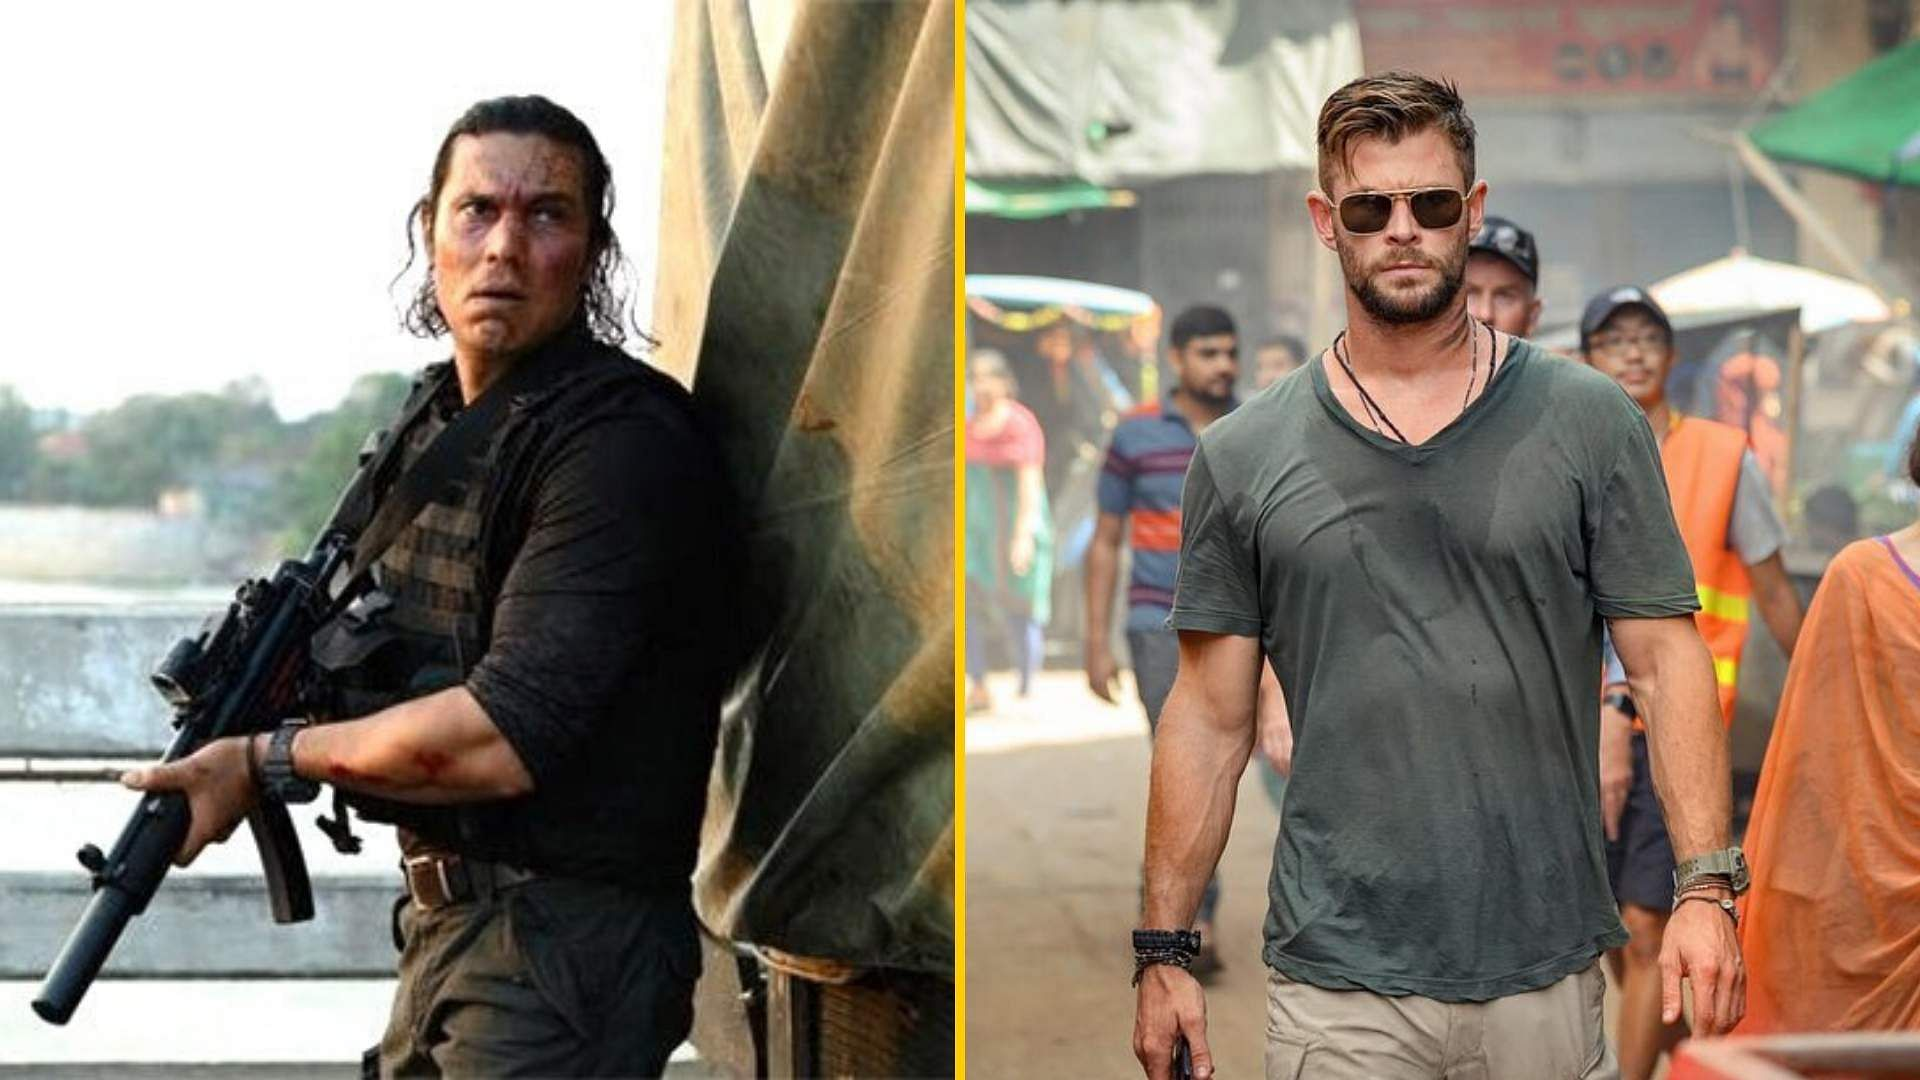 Netflix S Extraction Movie 2020 Randeep Hooda To Make Hollywood Debut With Chris Hemsworth In Netflix Film Extraction